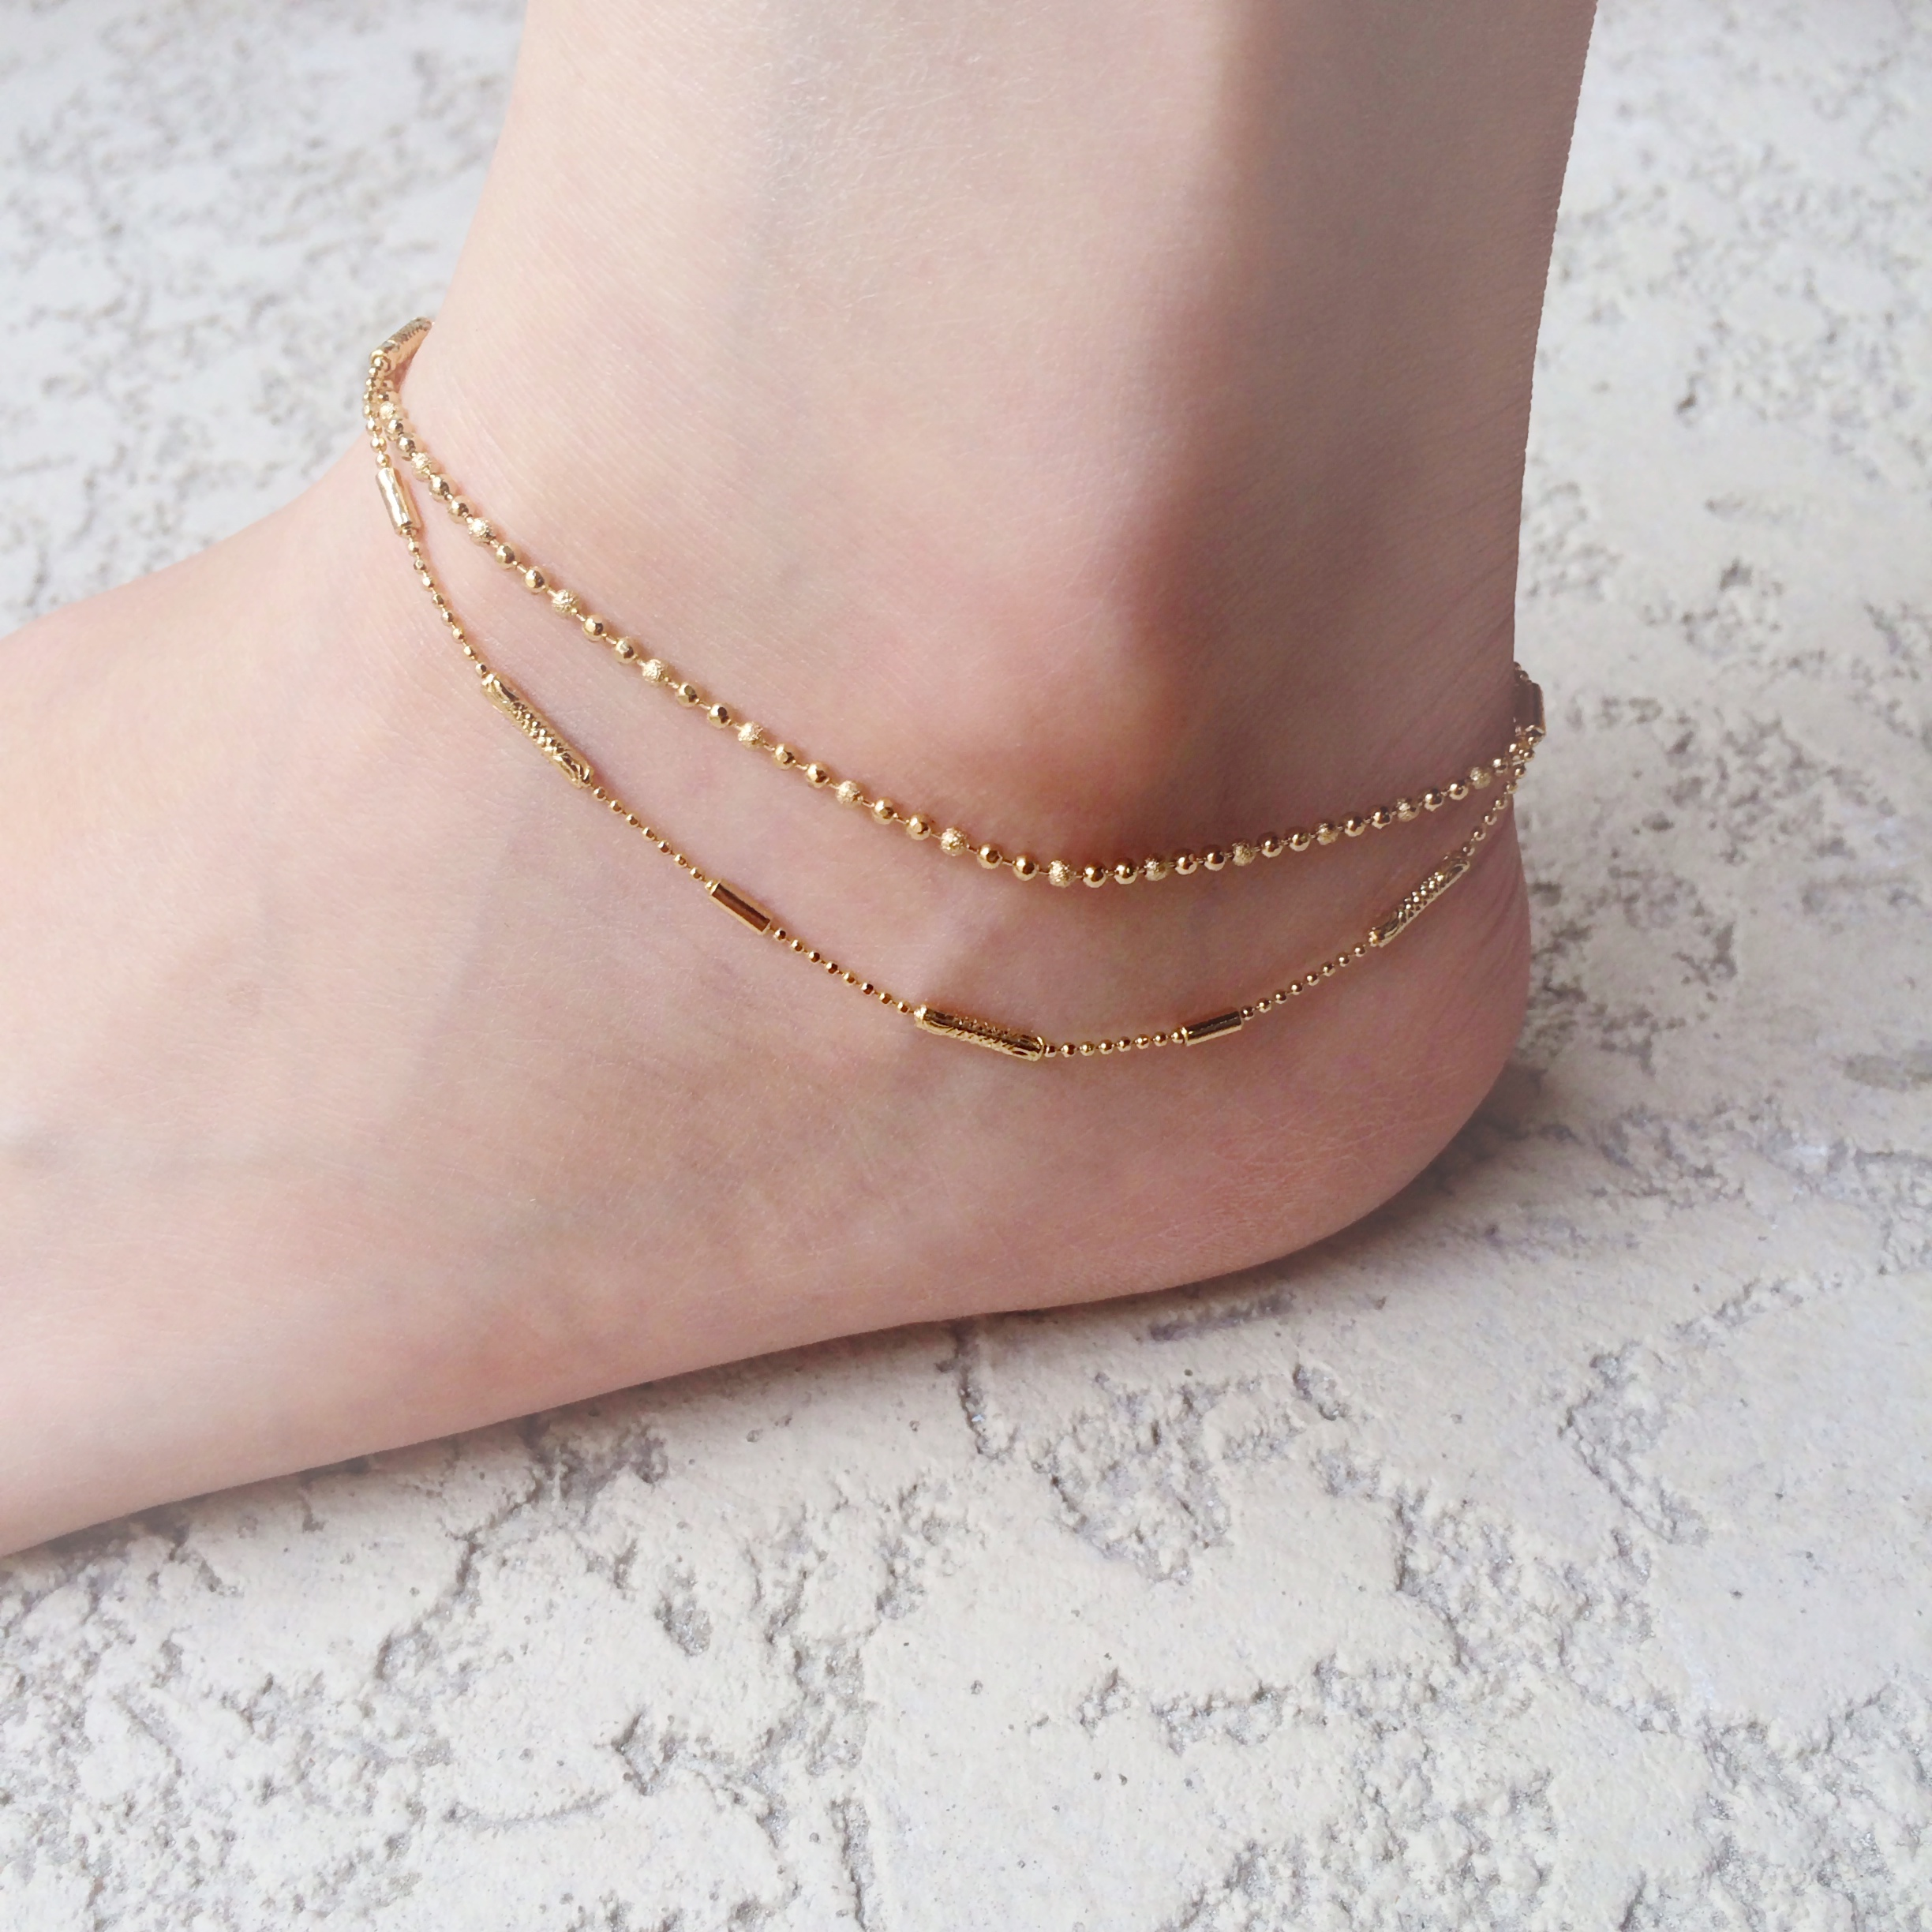 anklet ksvhs jewellery chain quick designs beautiful ace anklets shopping gold